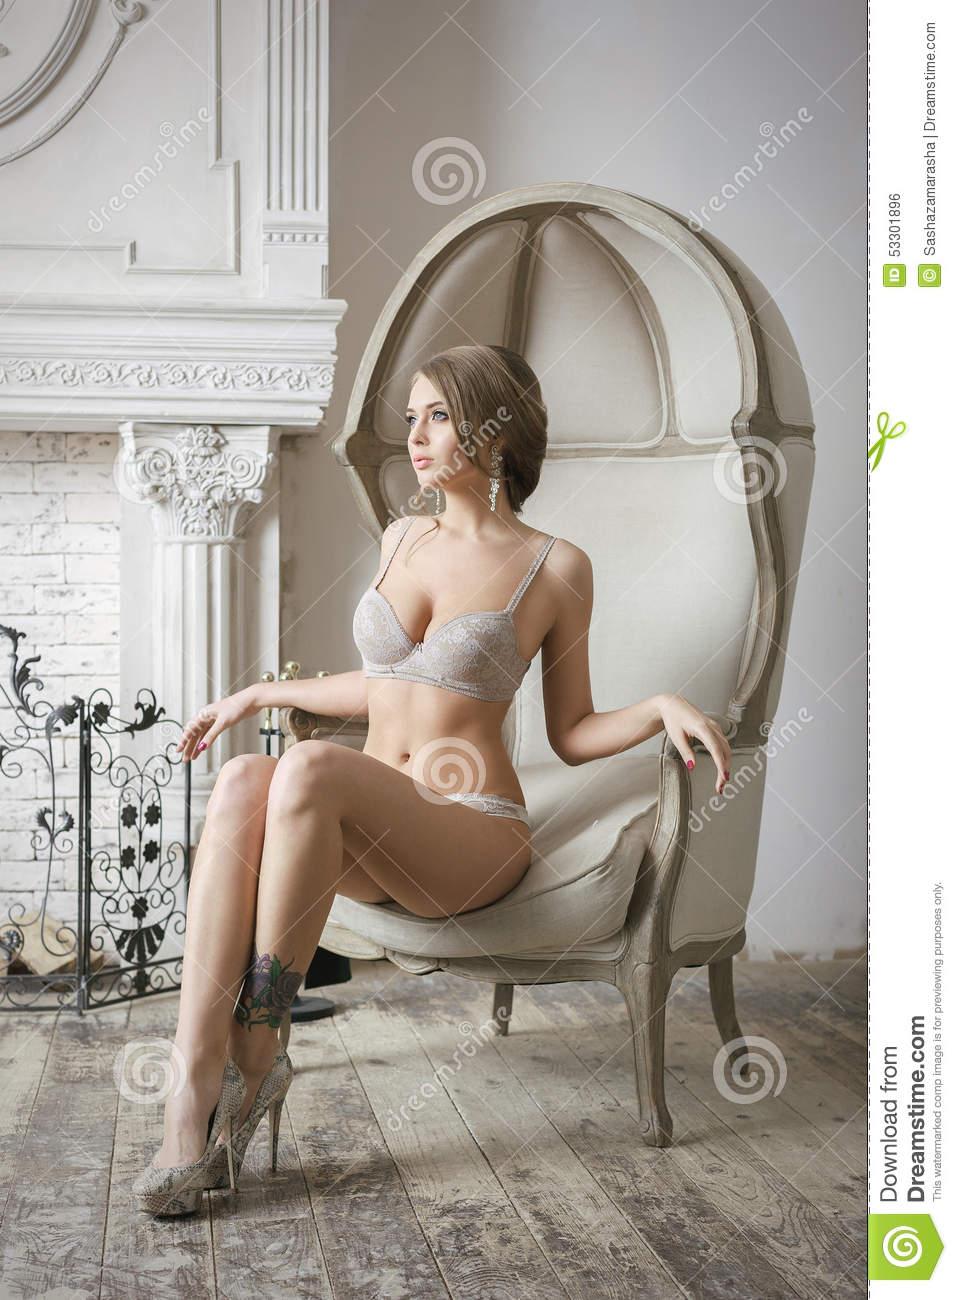 Attractive Blonde Bride Woman Sitting On Chair Stock Photo